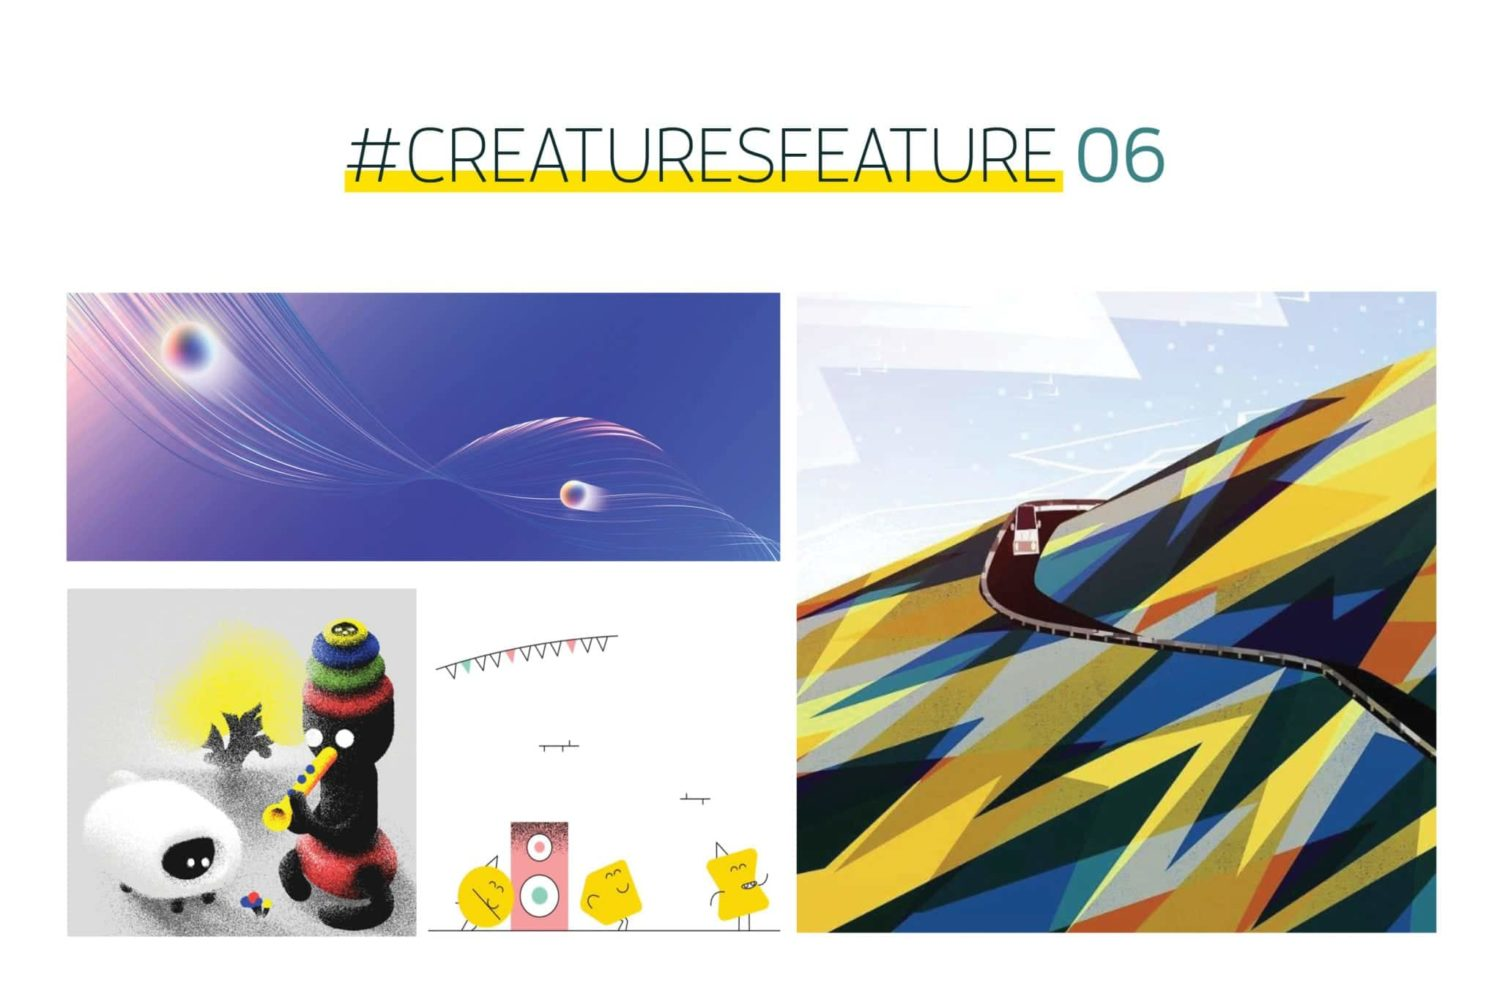 Creatures Feature 06